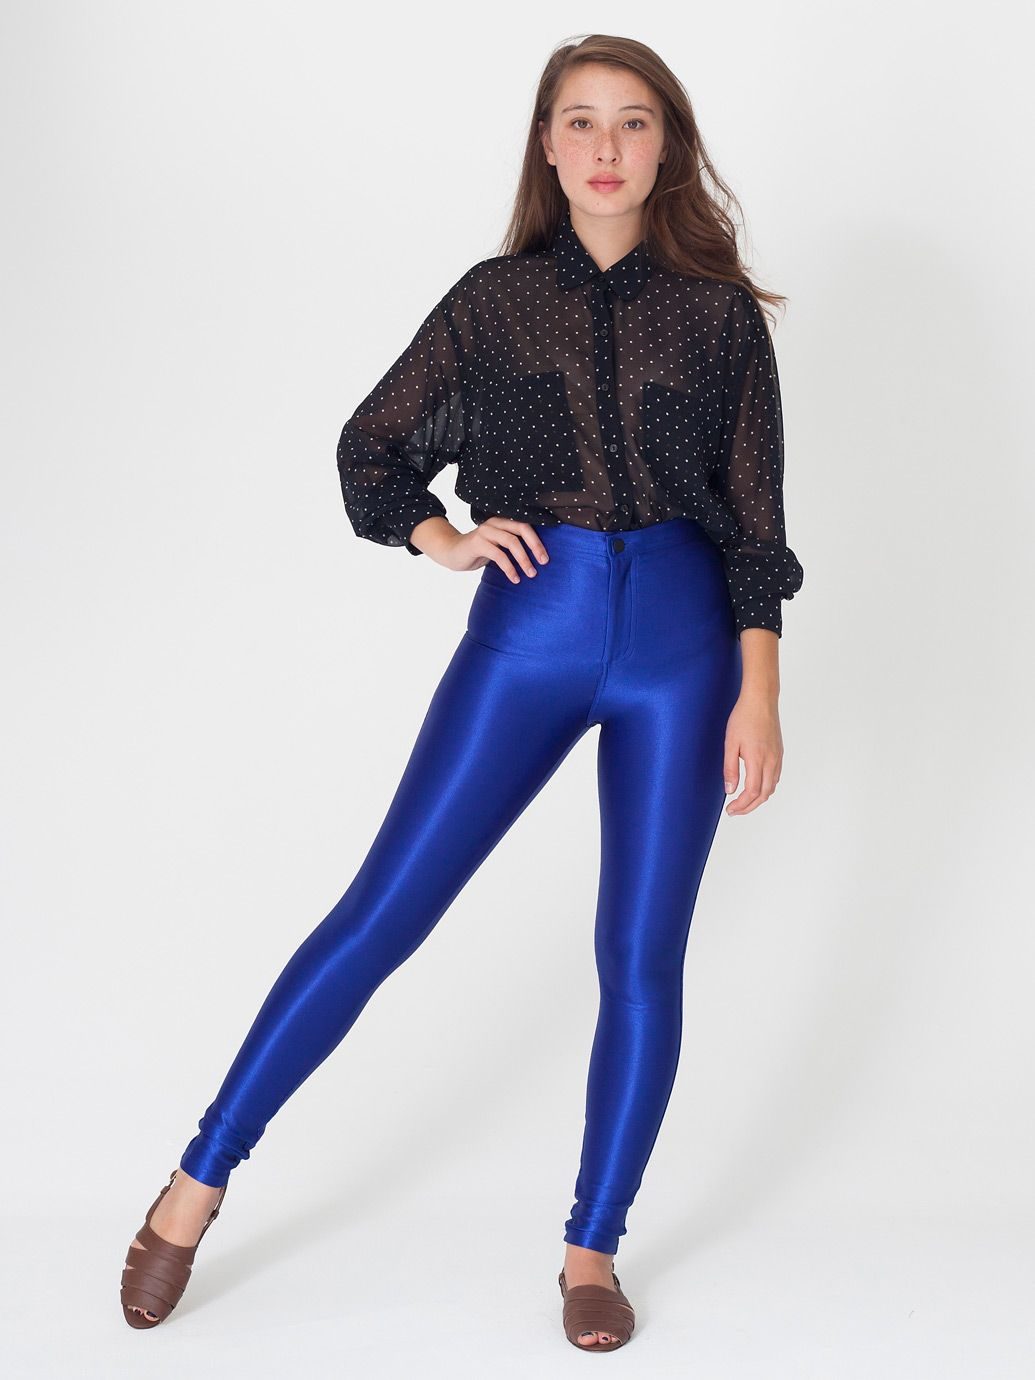 Fashion week How to blue wear disco pants for lady